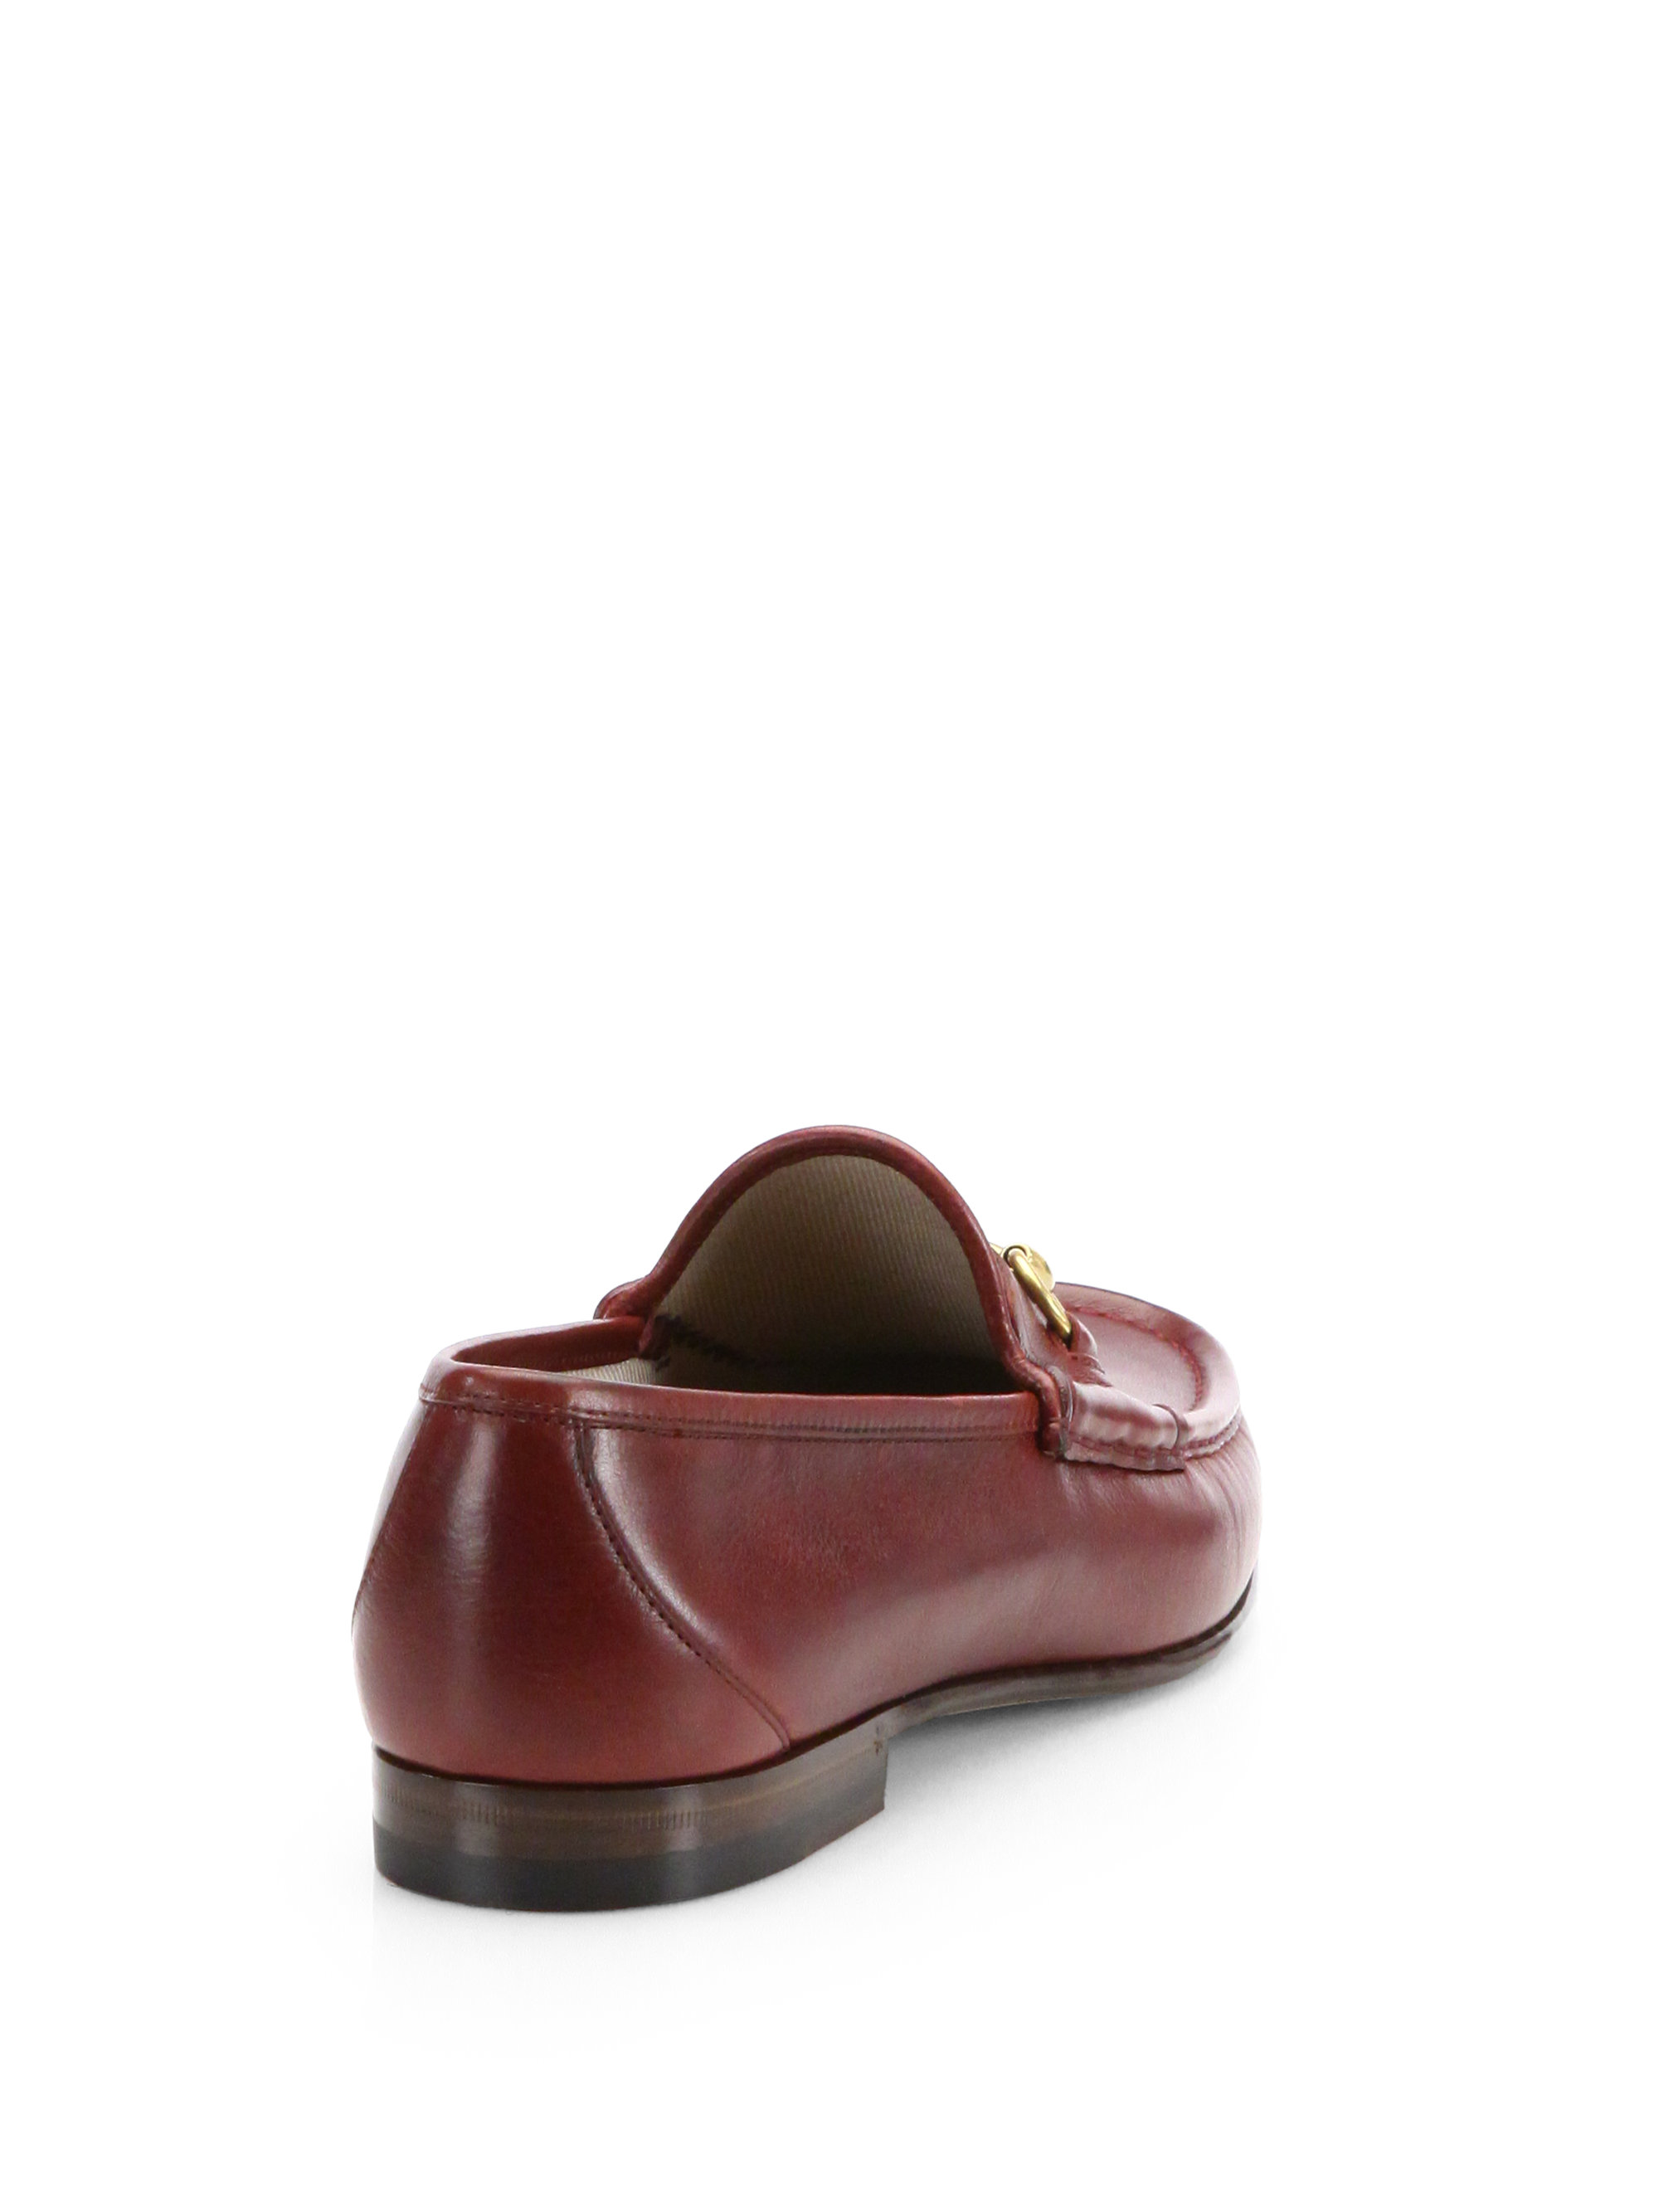 22527562cbb Lyst - Gucci Roos 1953 Horsebit Loafers in Brown for Men